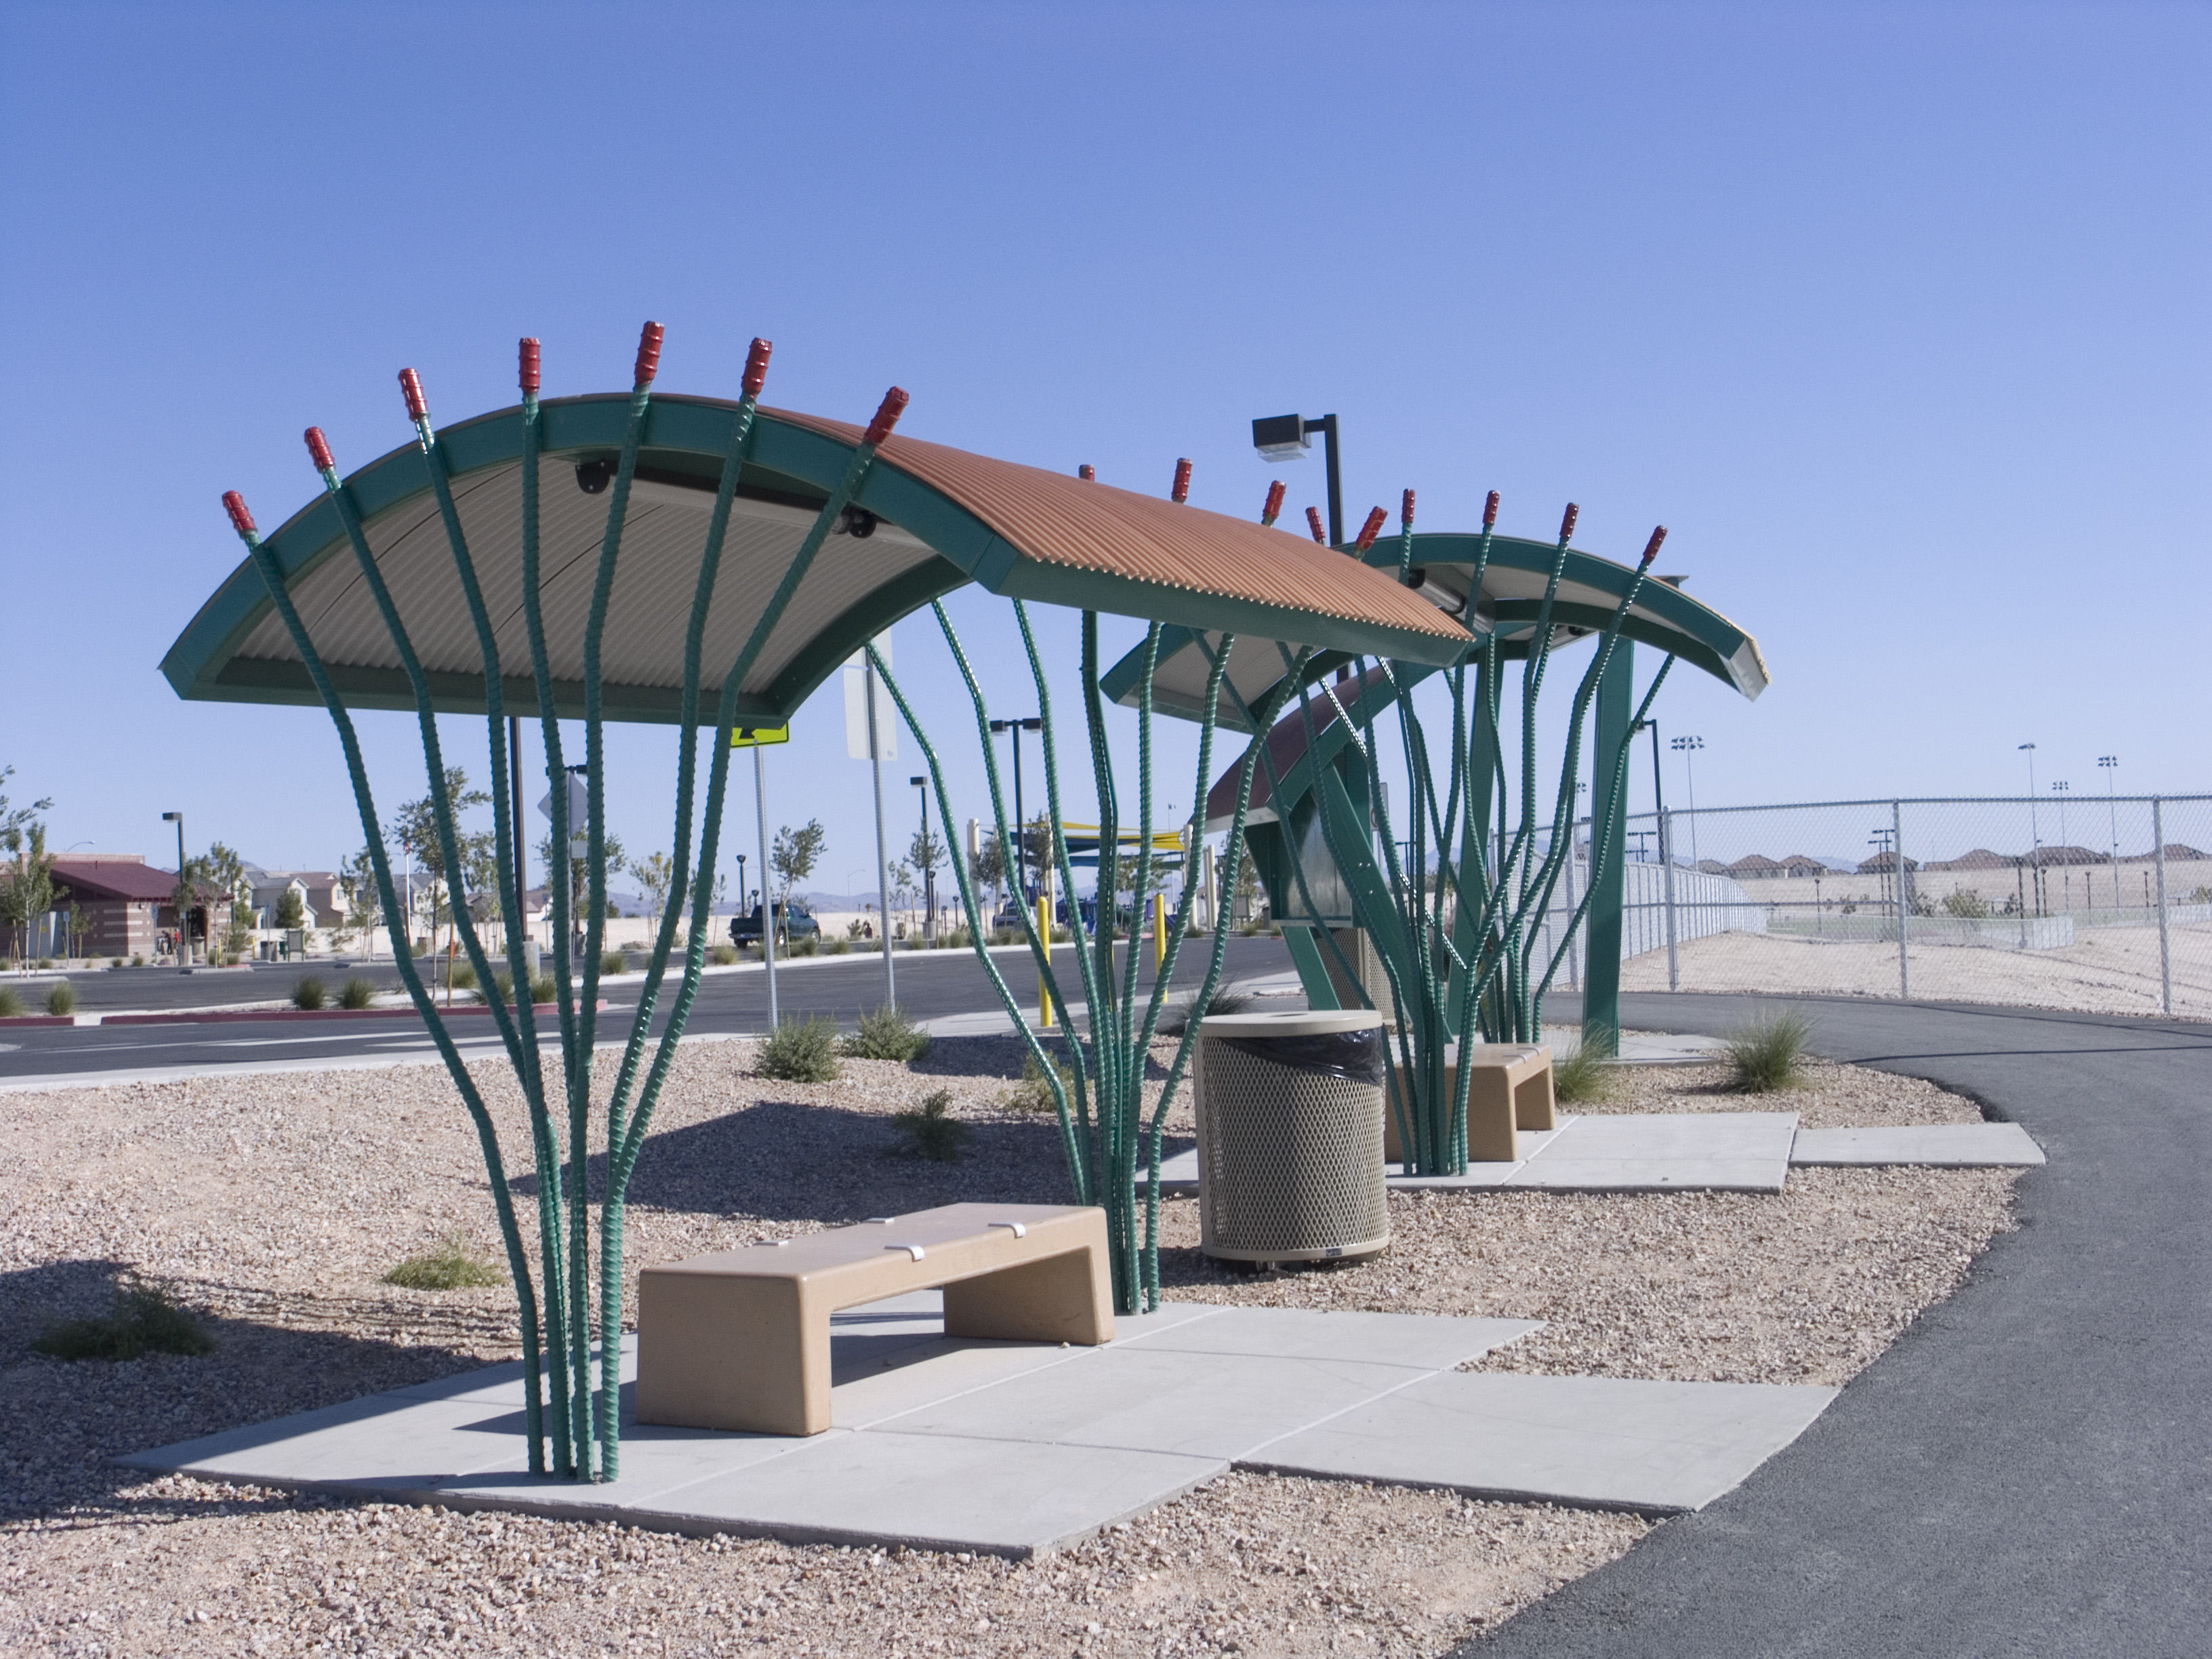 Ocotillo shade shelter